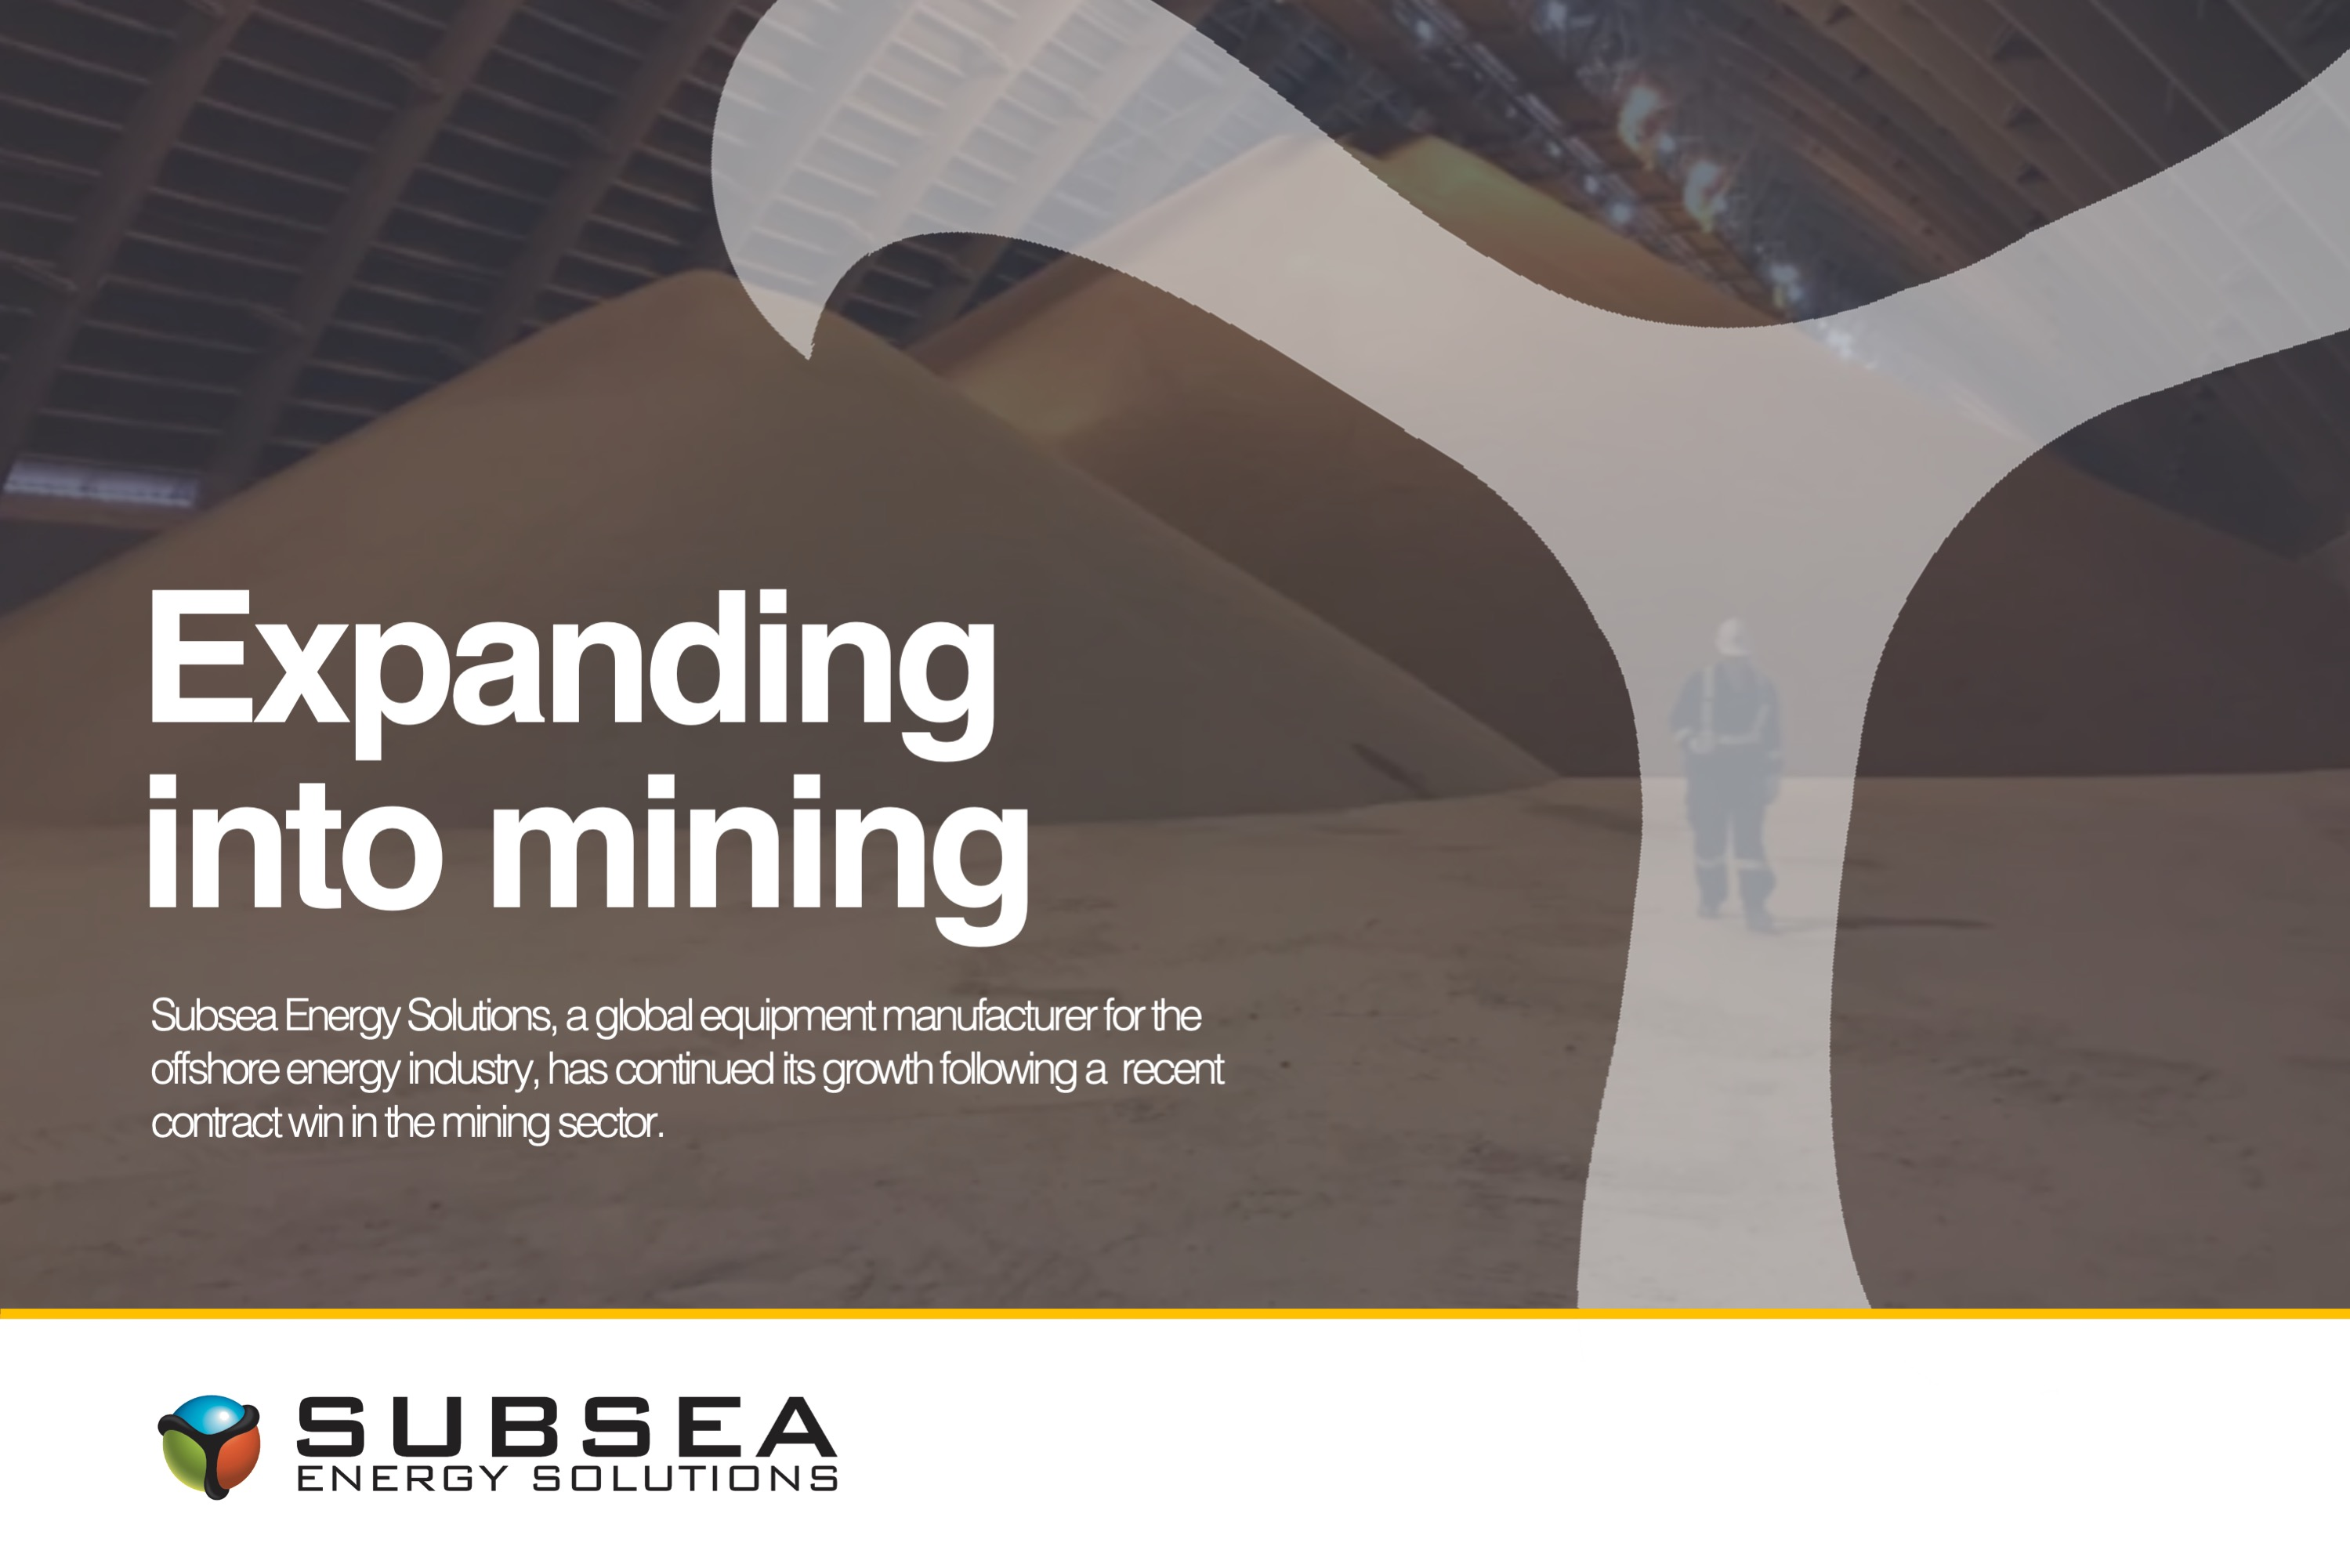 Subsea Energy Solutions (SES) Expands Into Mining